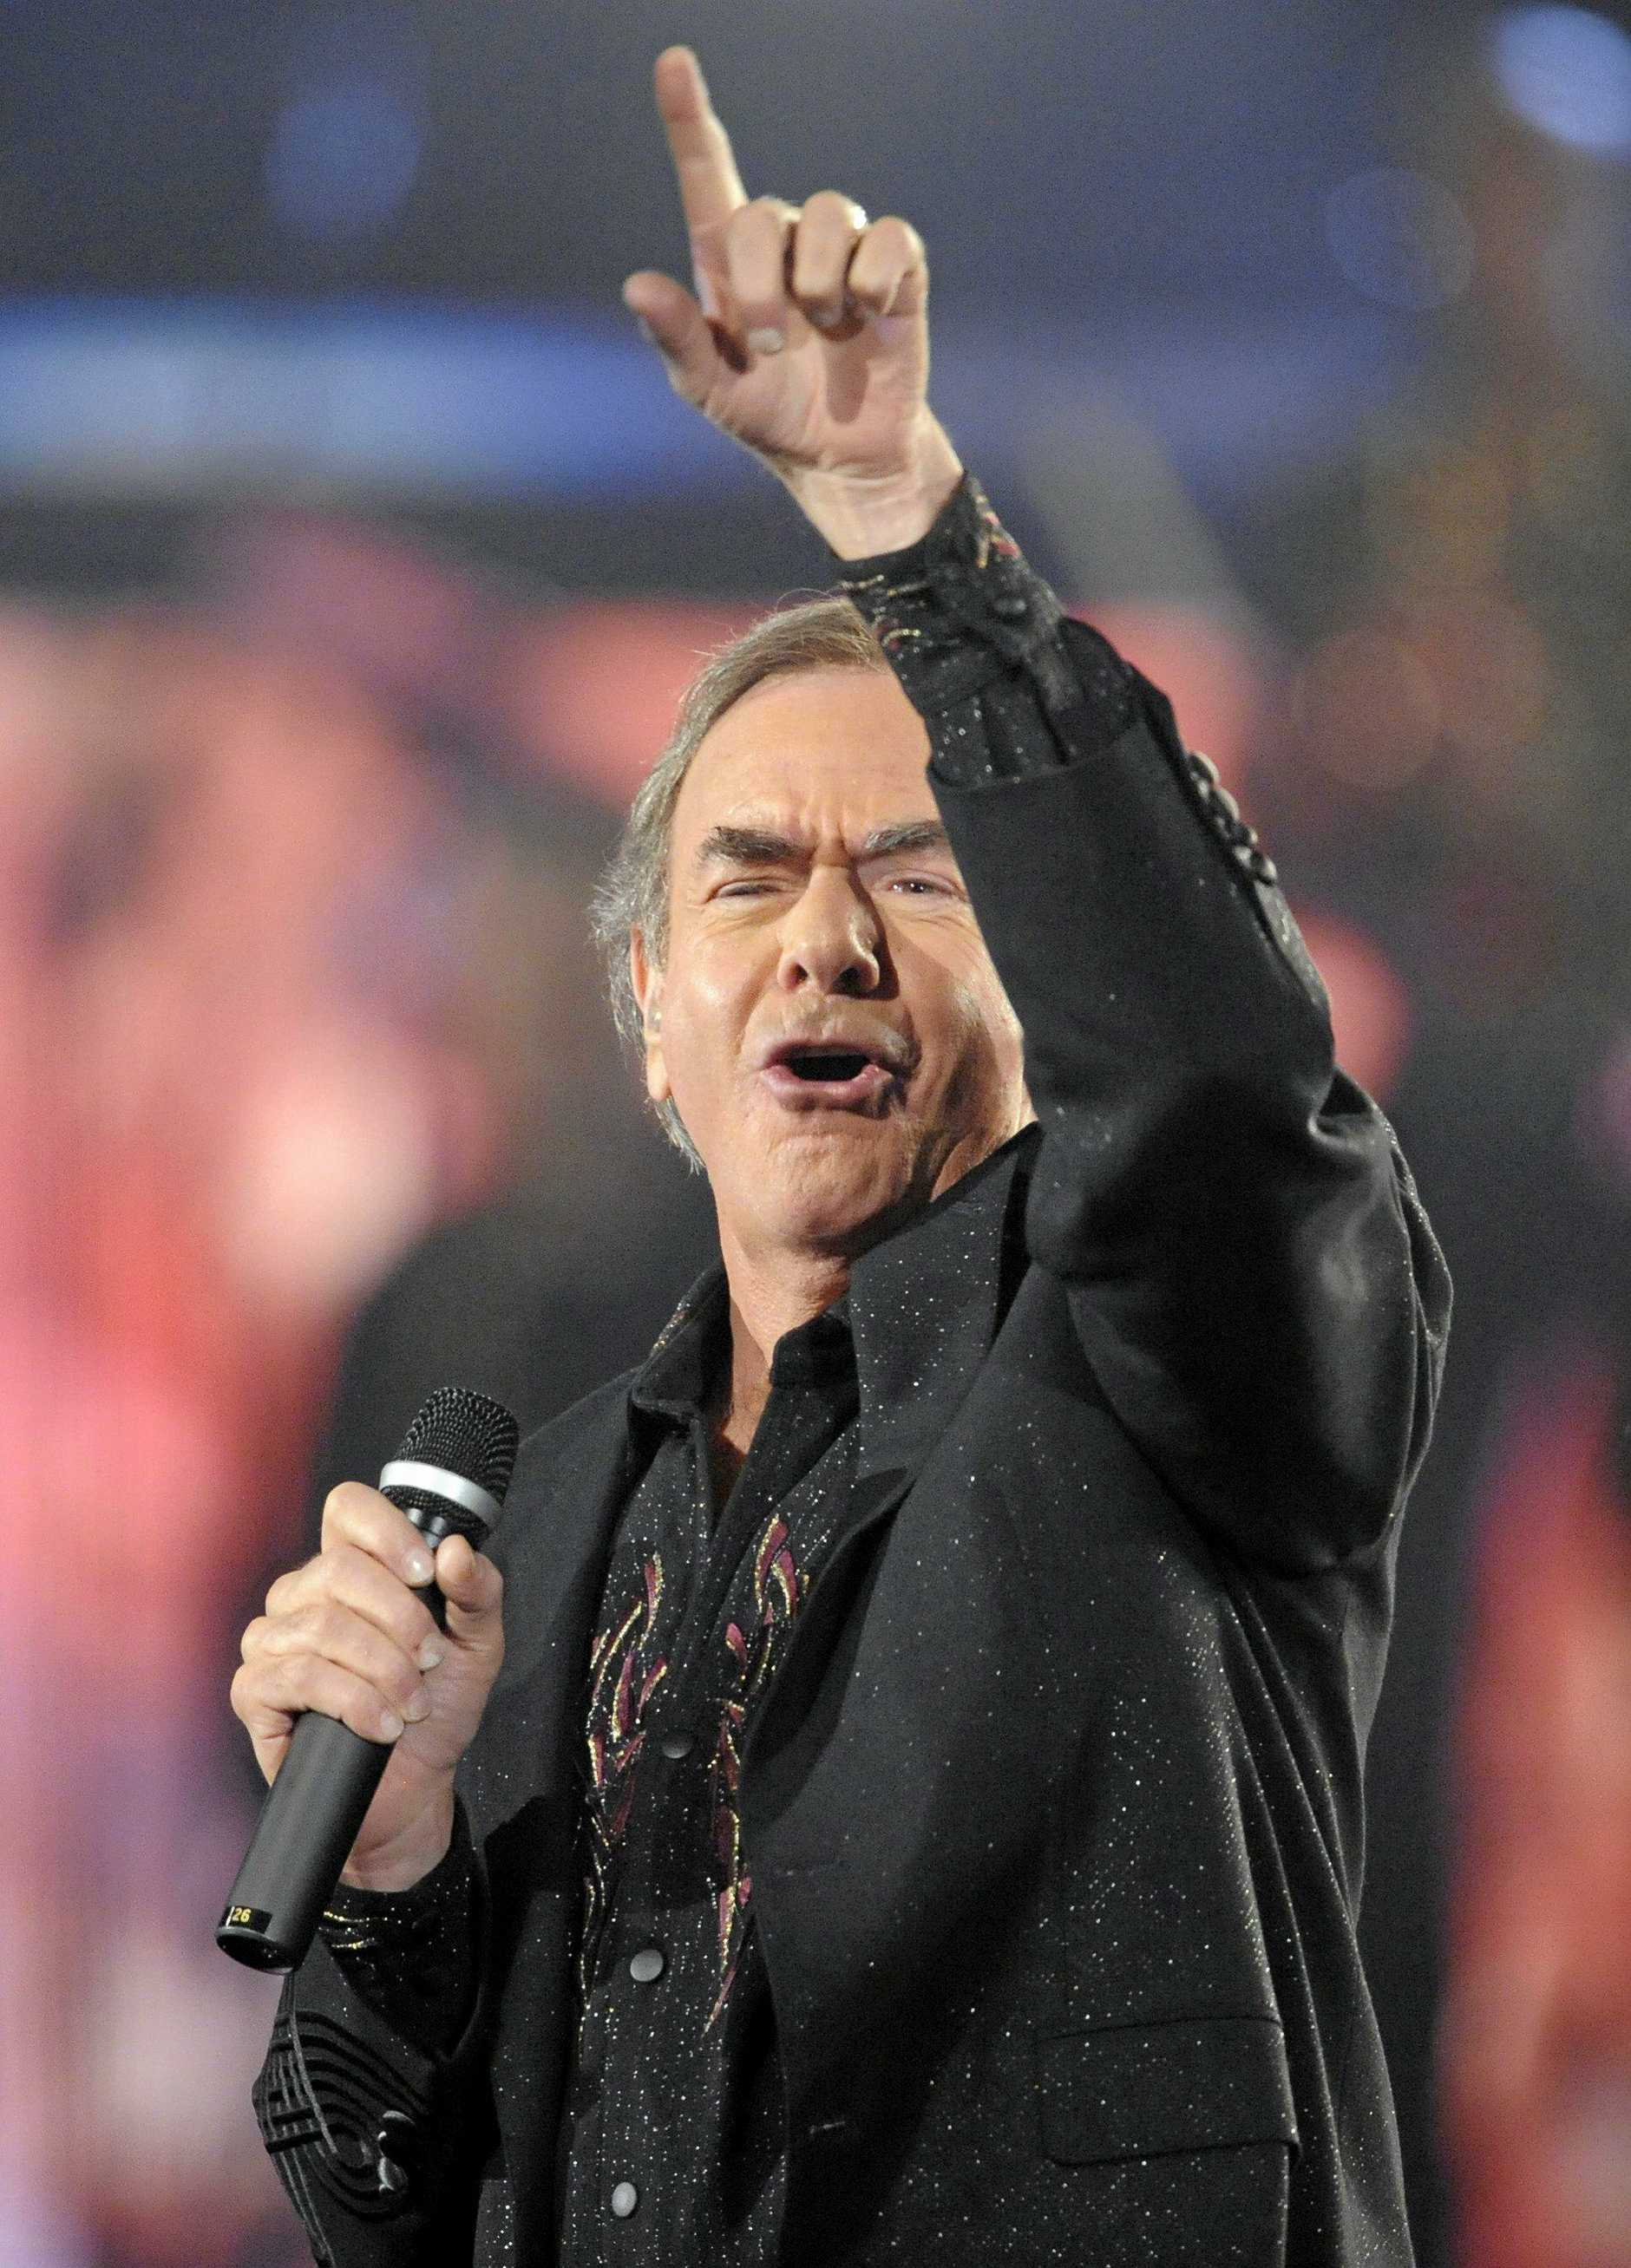 Neil Diamond performs at the 51st Annual Grammy Awards on Sunday, Feb. 8, 2009, in Los Angeles. (AP Photo/Mark J. Terrill)